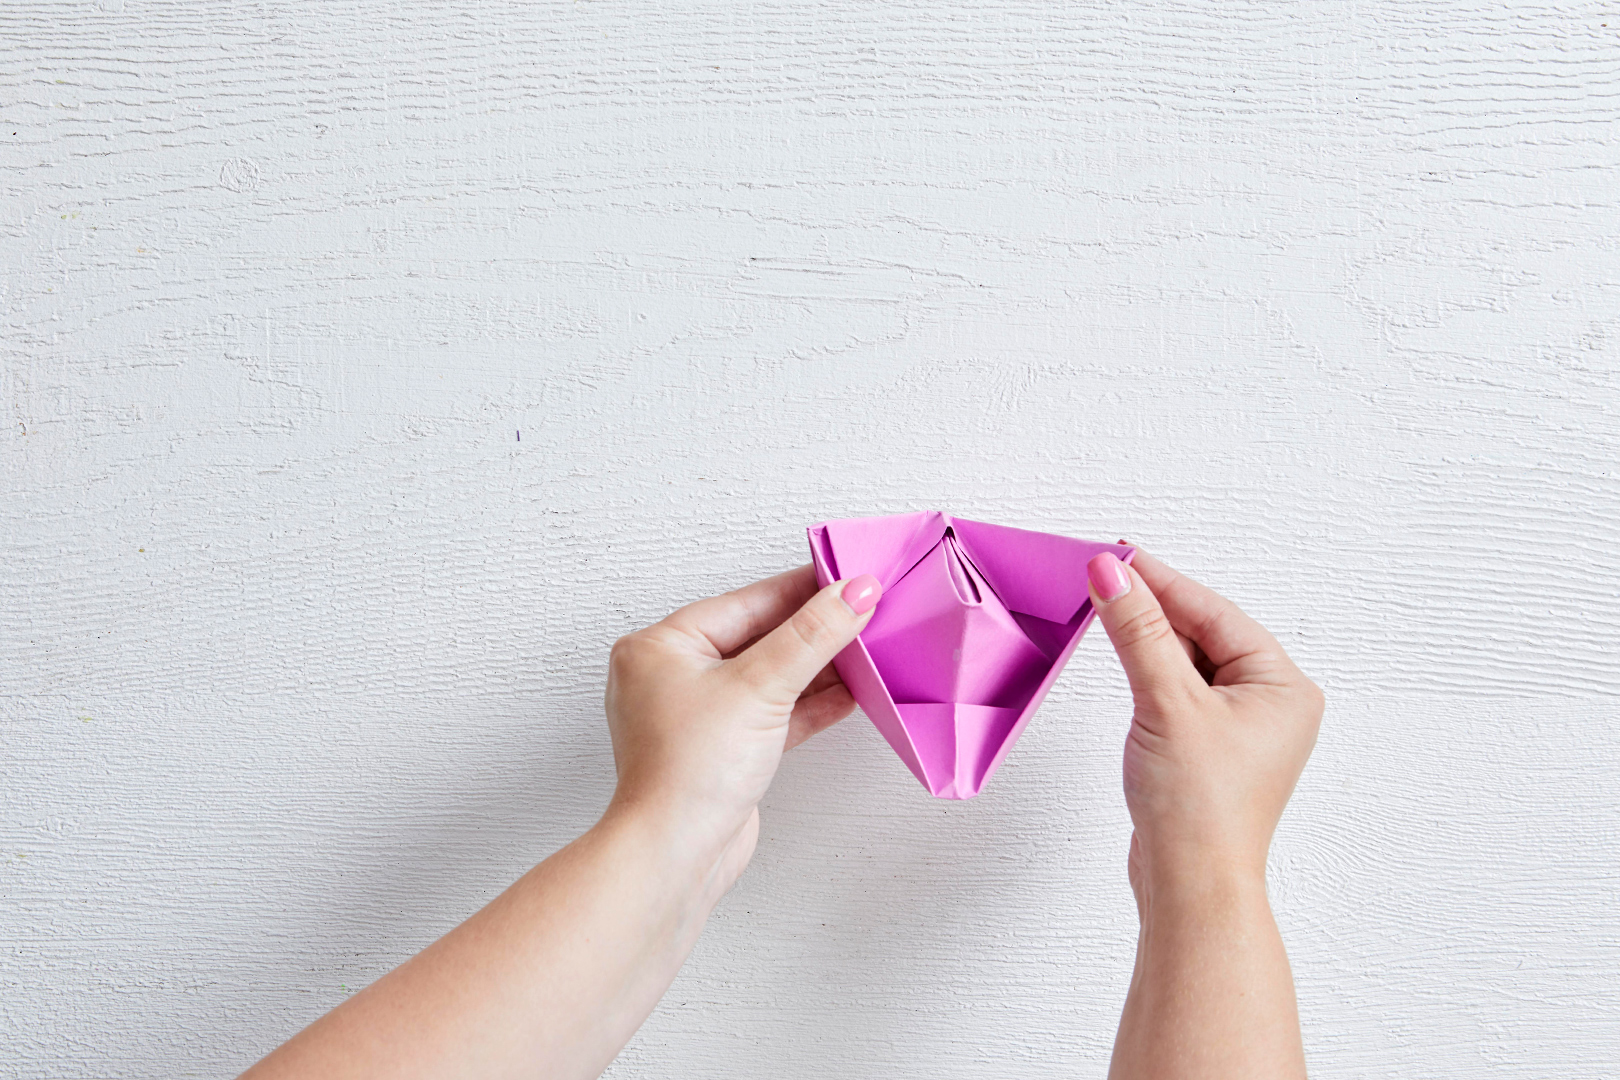 creating last folds of pink appetizer paper boats